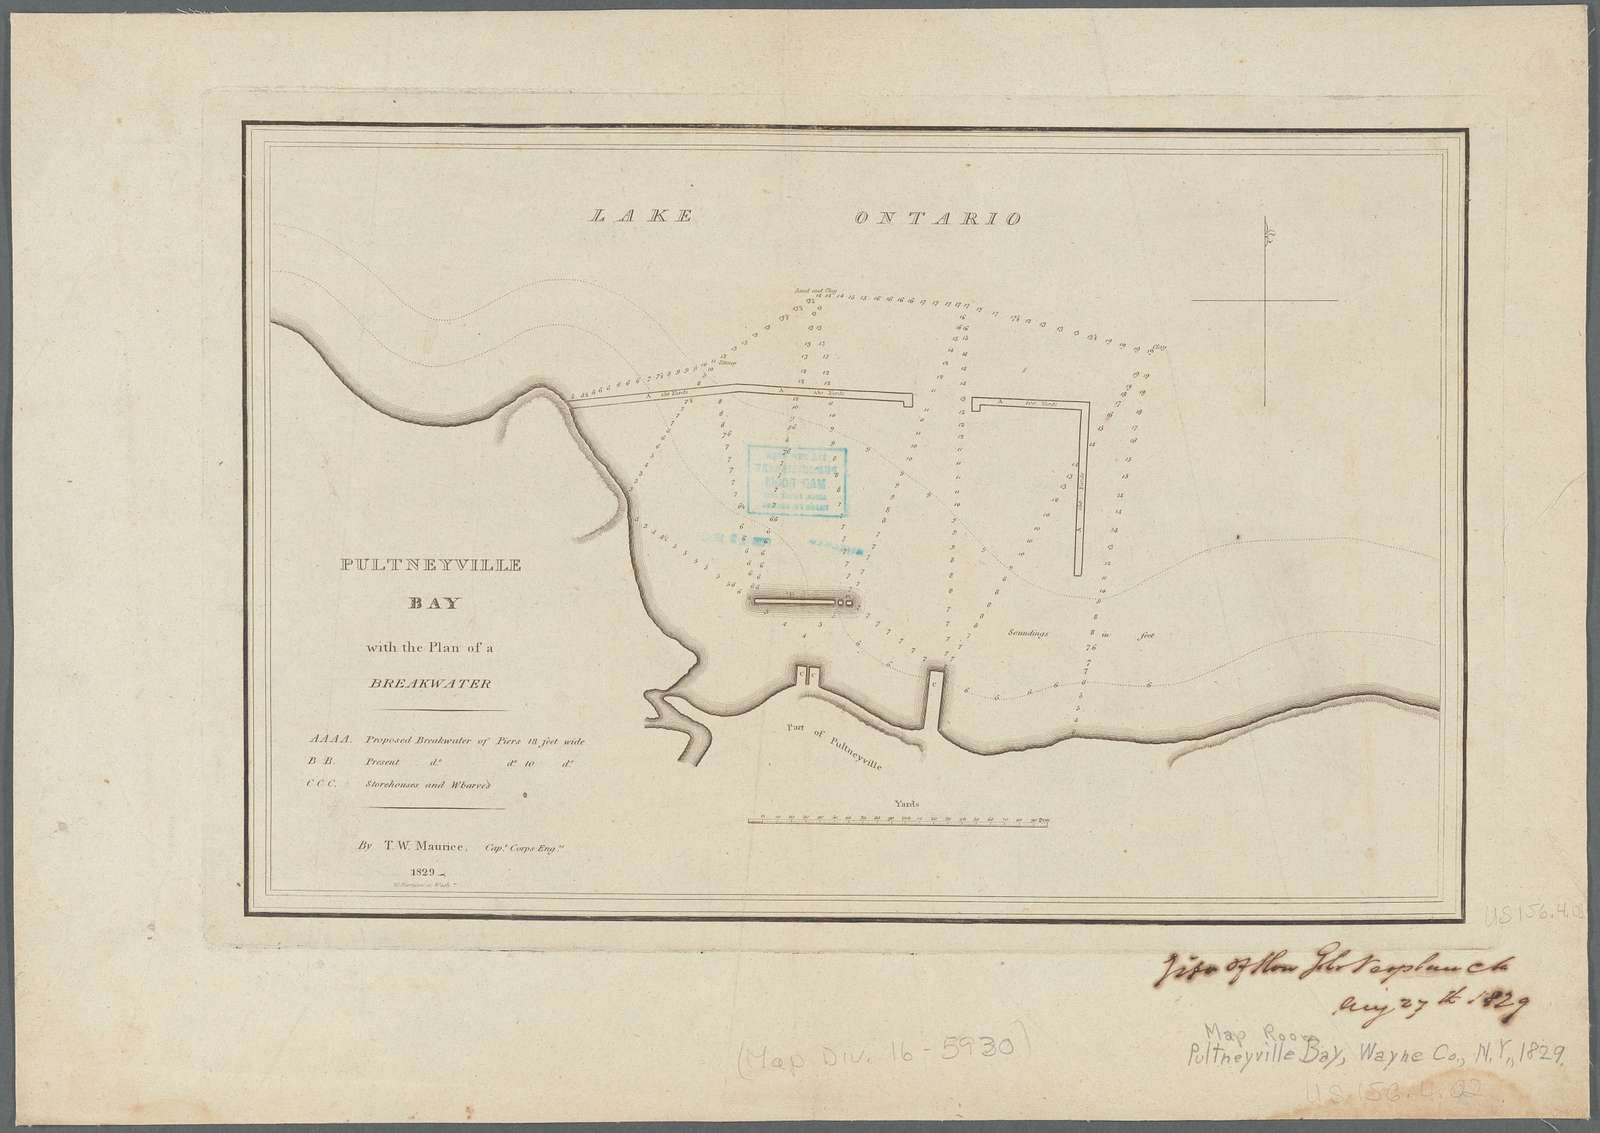 Pultneyville bay: with the plan of a breakwater